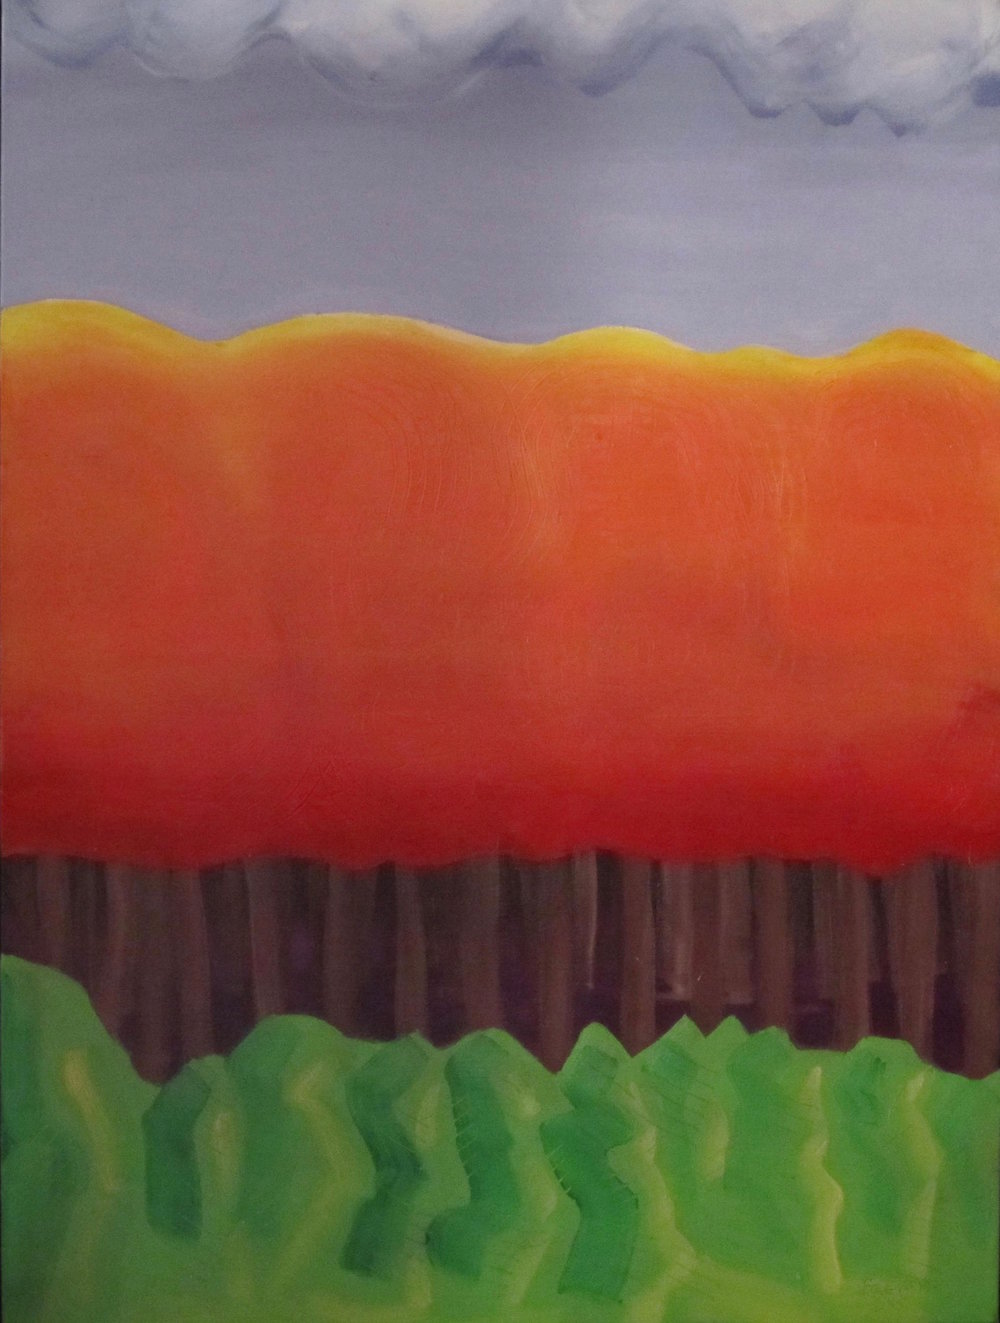 Autumnal - Oil on Canvas30 x 40Now residing in Portsmouth, NH with Kirsten